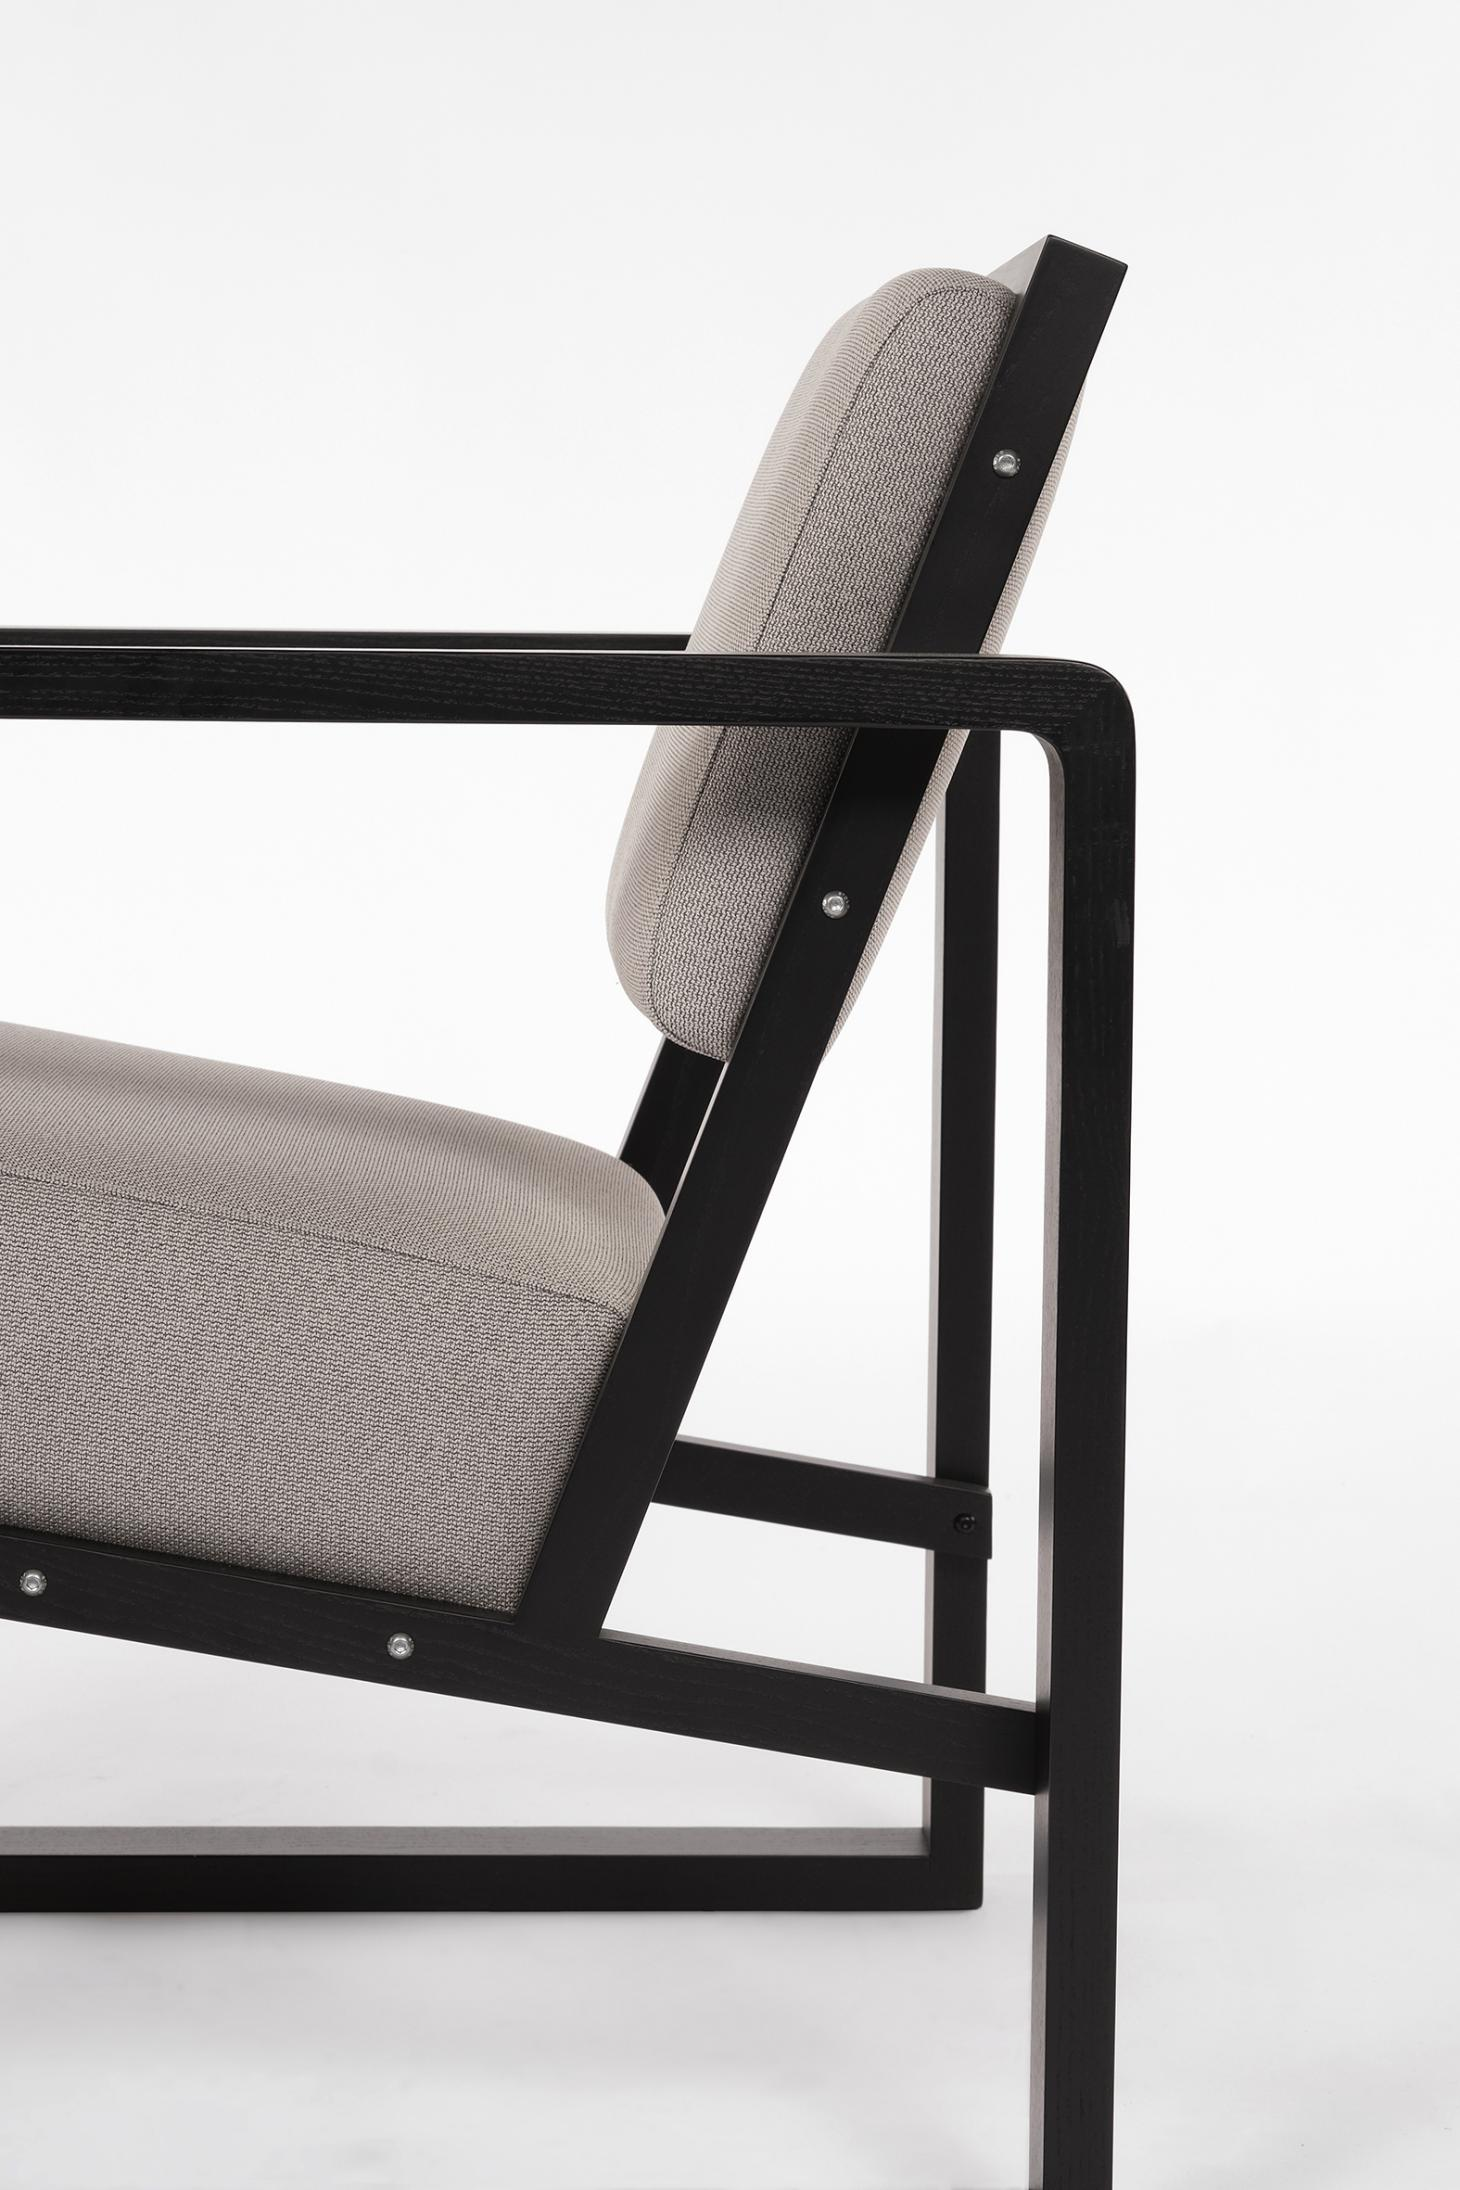 Chair with angular black wooden frame and grey upholstery, shown from the side